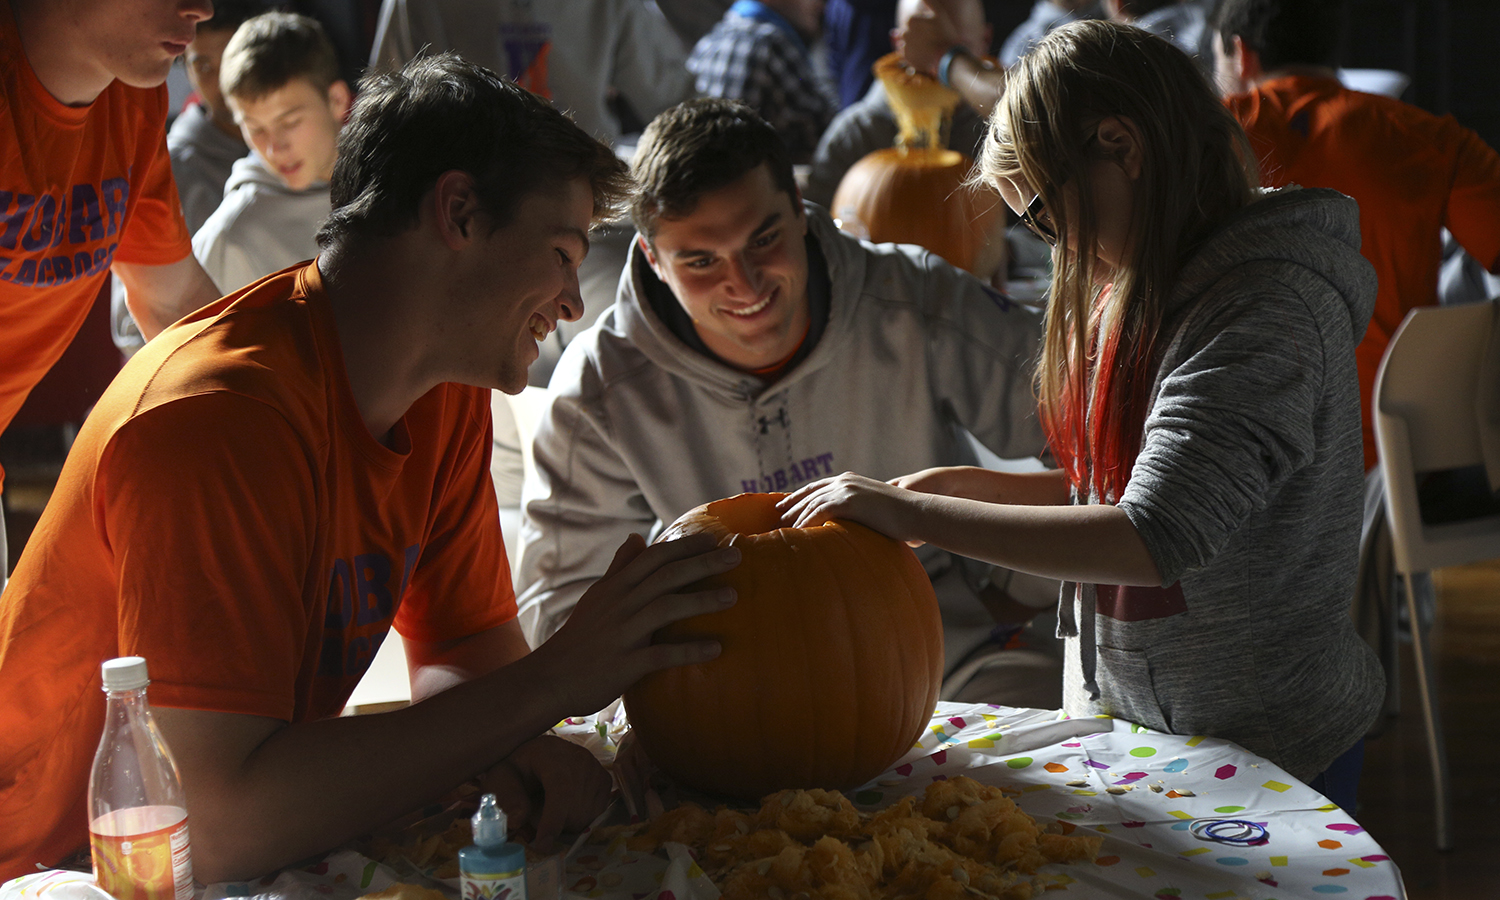 Tristan Doherty '19 and KoKo Avedisian '19 carve pumpkins with students from the Boys and Girls Club in Bartlett Theatre.